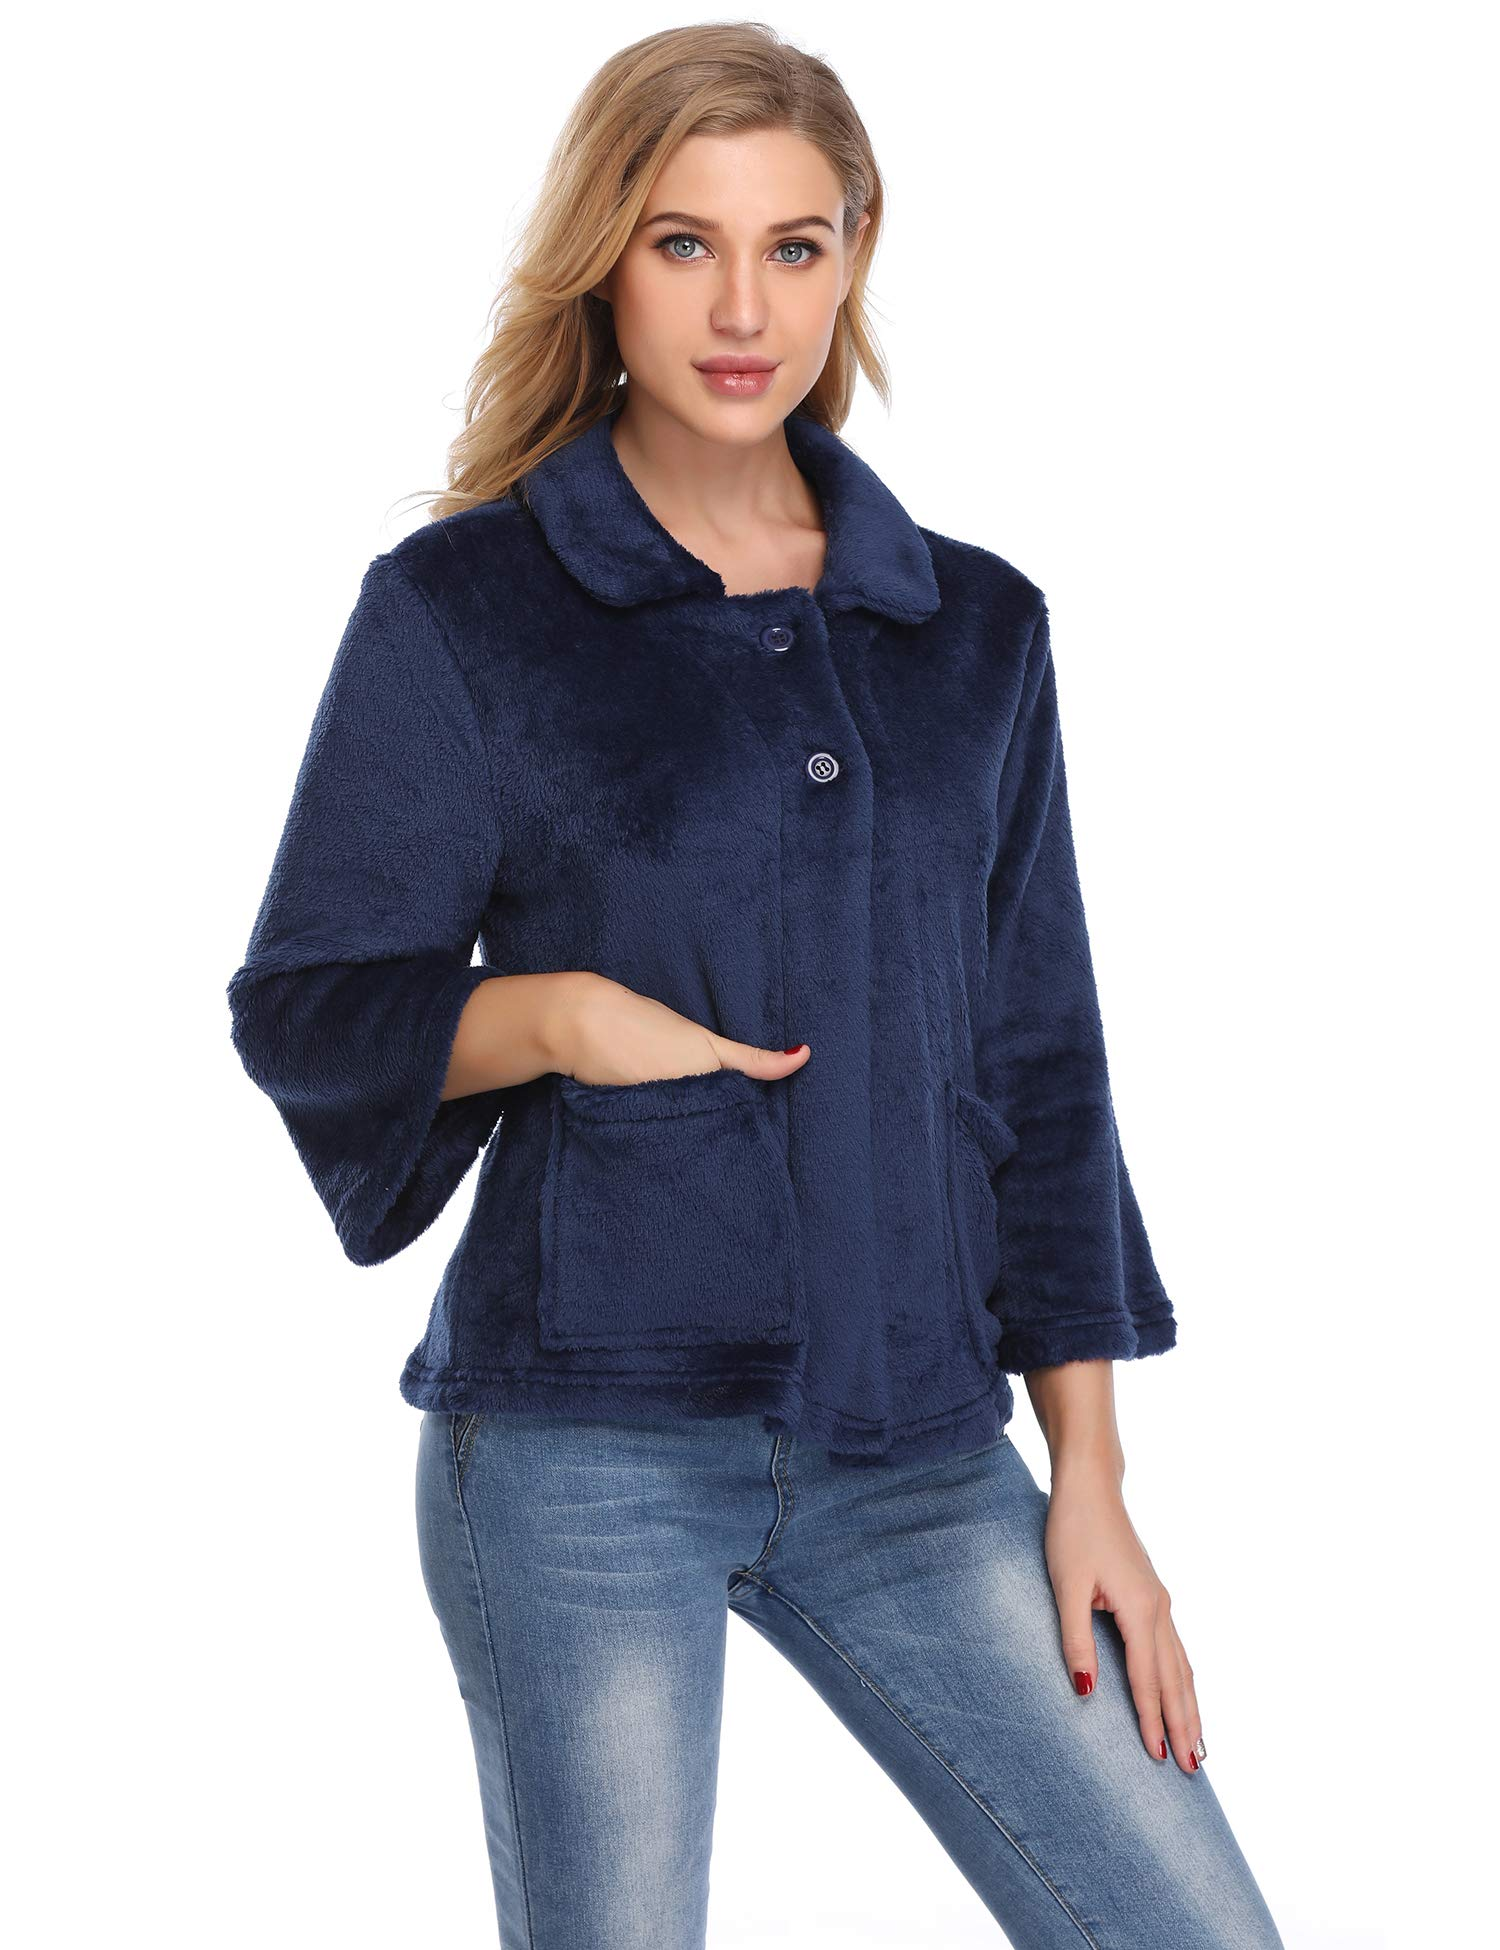 Lusofie Bed Jacket for Women Button Front Bed Coat Peter Pan-Collar Sleep Top (Navy Blue,XL)